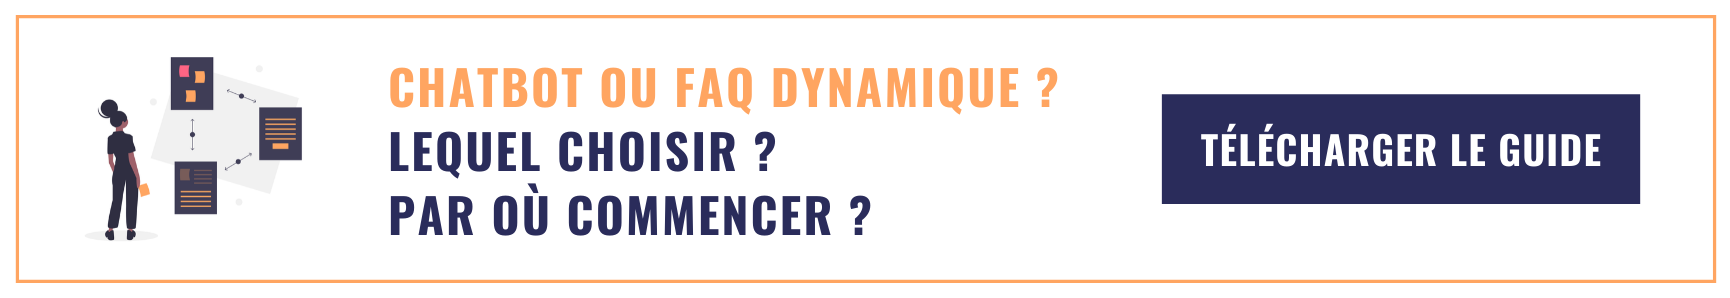 CTA long - Chatbot Vs FAQ dynamique